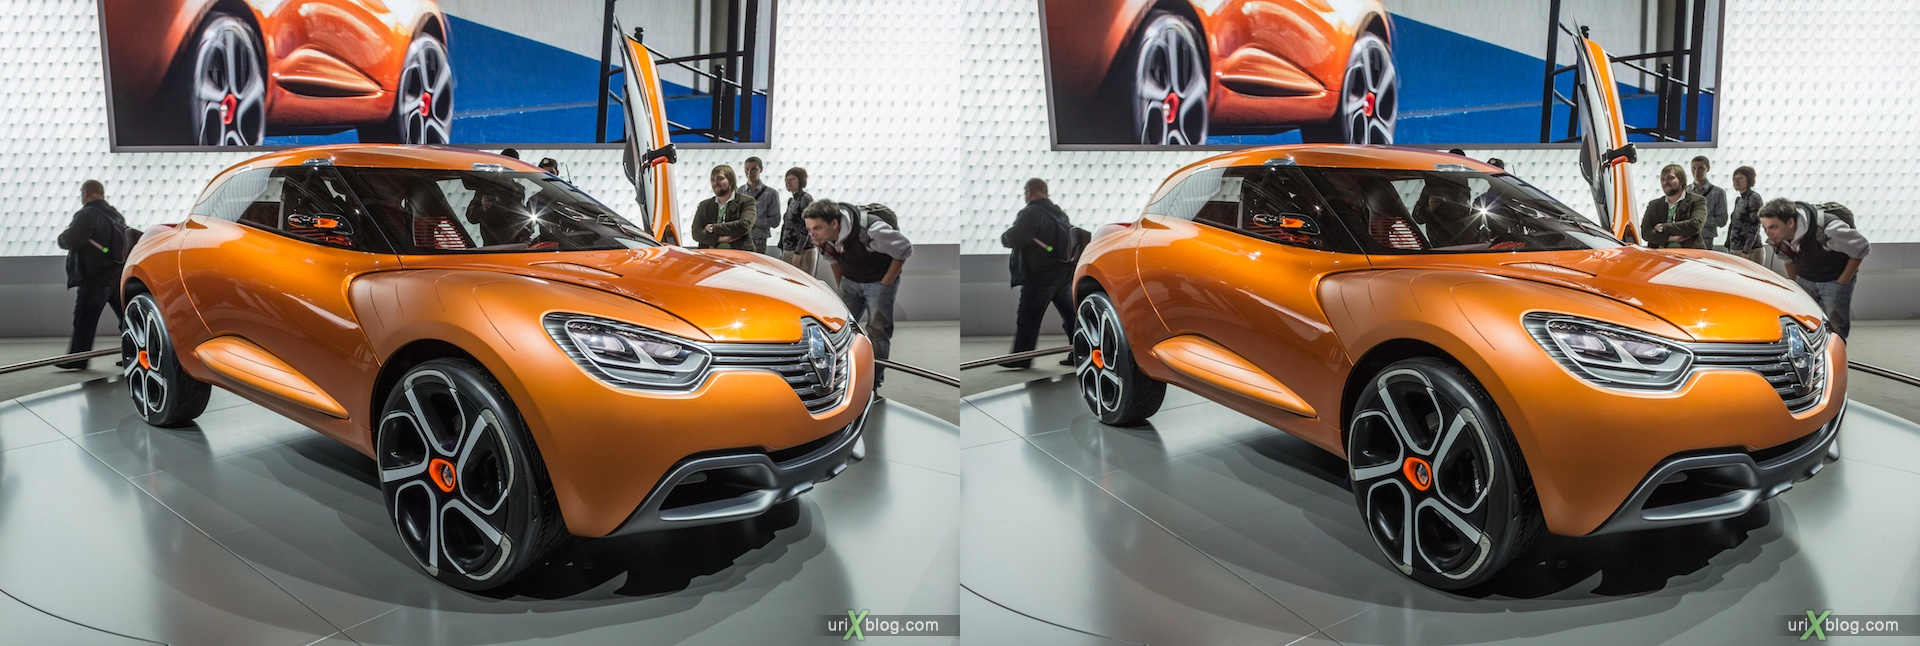 2012, Renault Captur, Moscow International Automobile Salon, auto show, 3D, stereo pair, cross-eyed, crossview